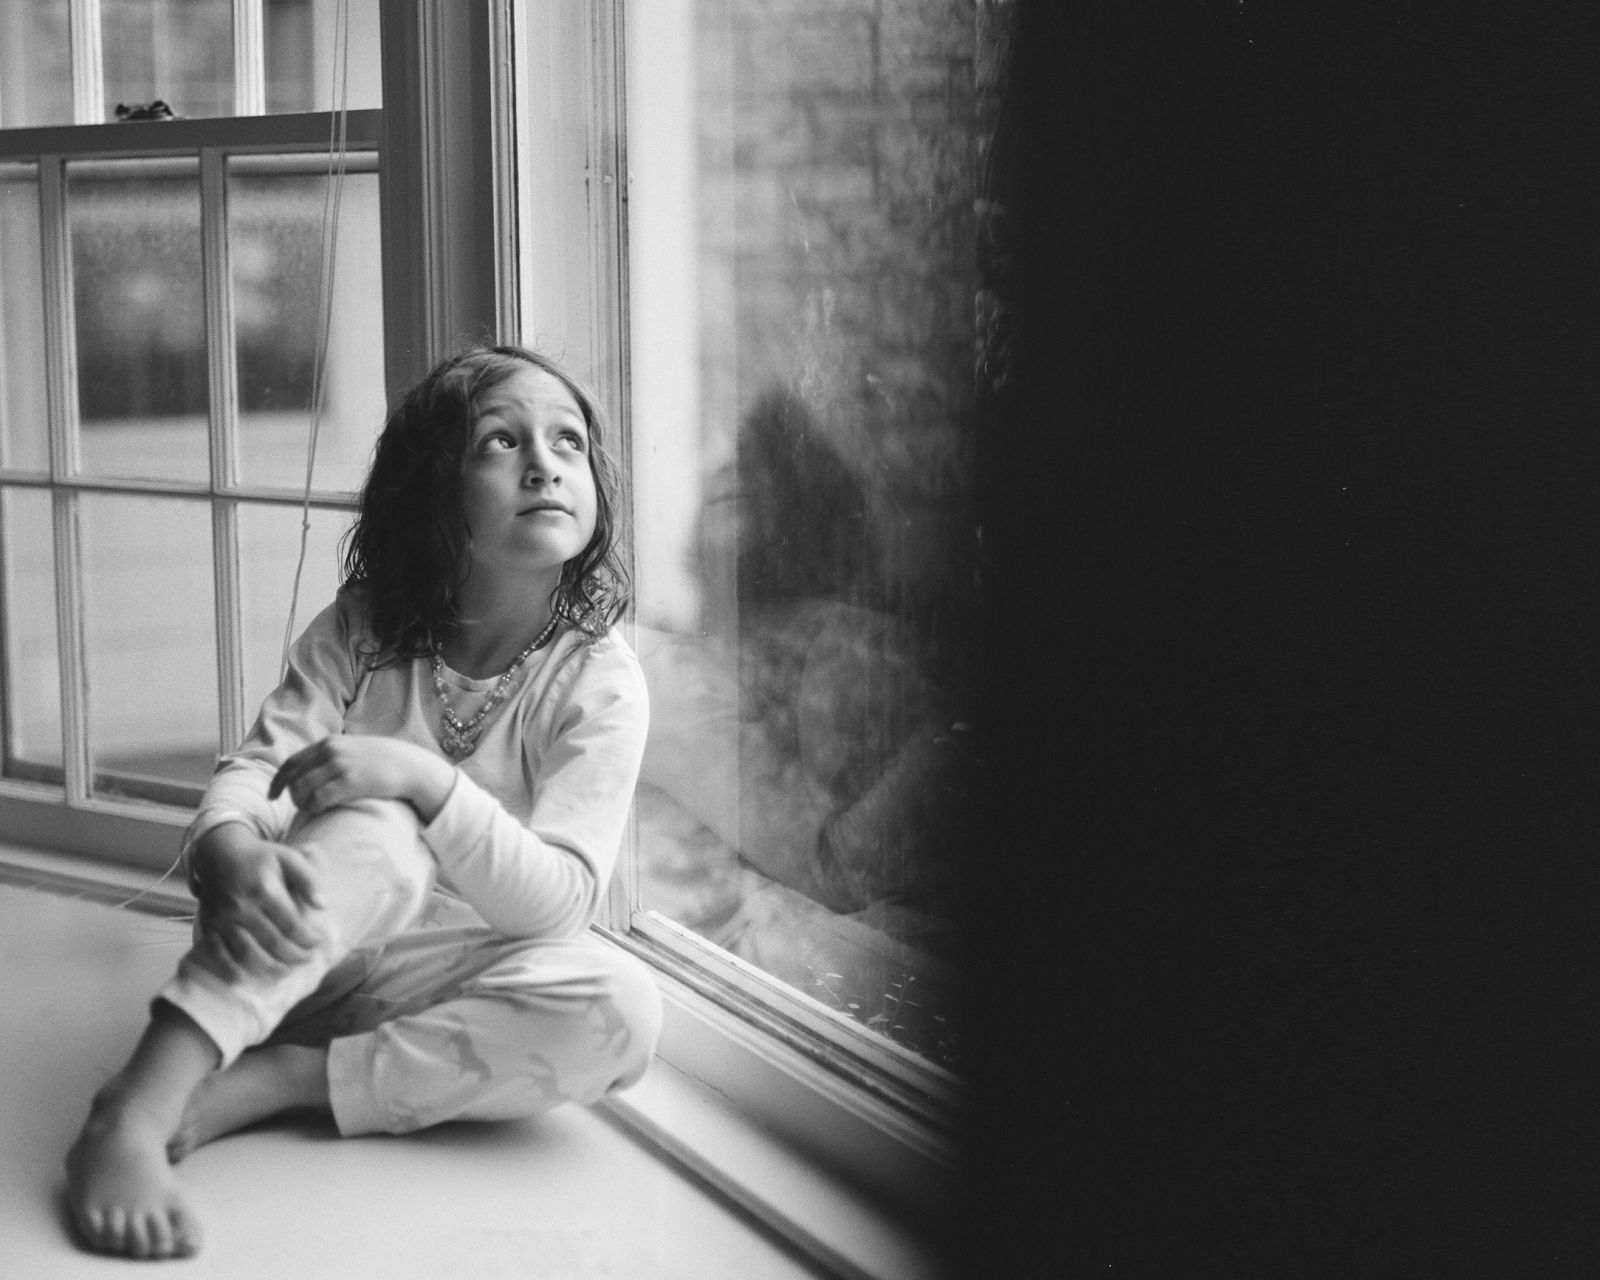 verva photography. b&w film portraits